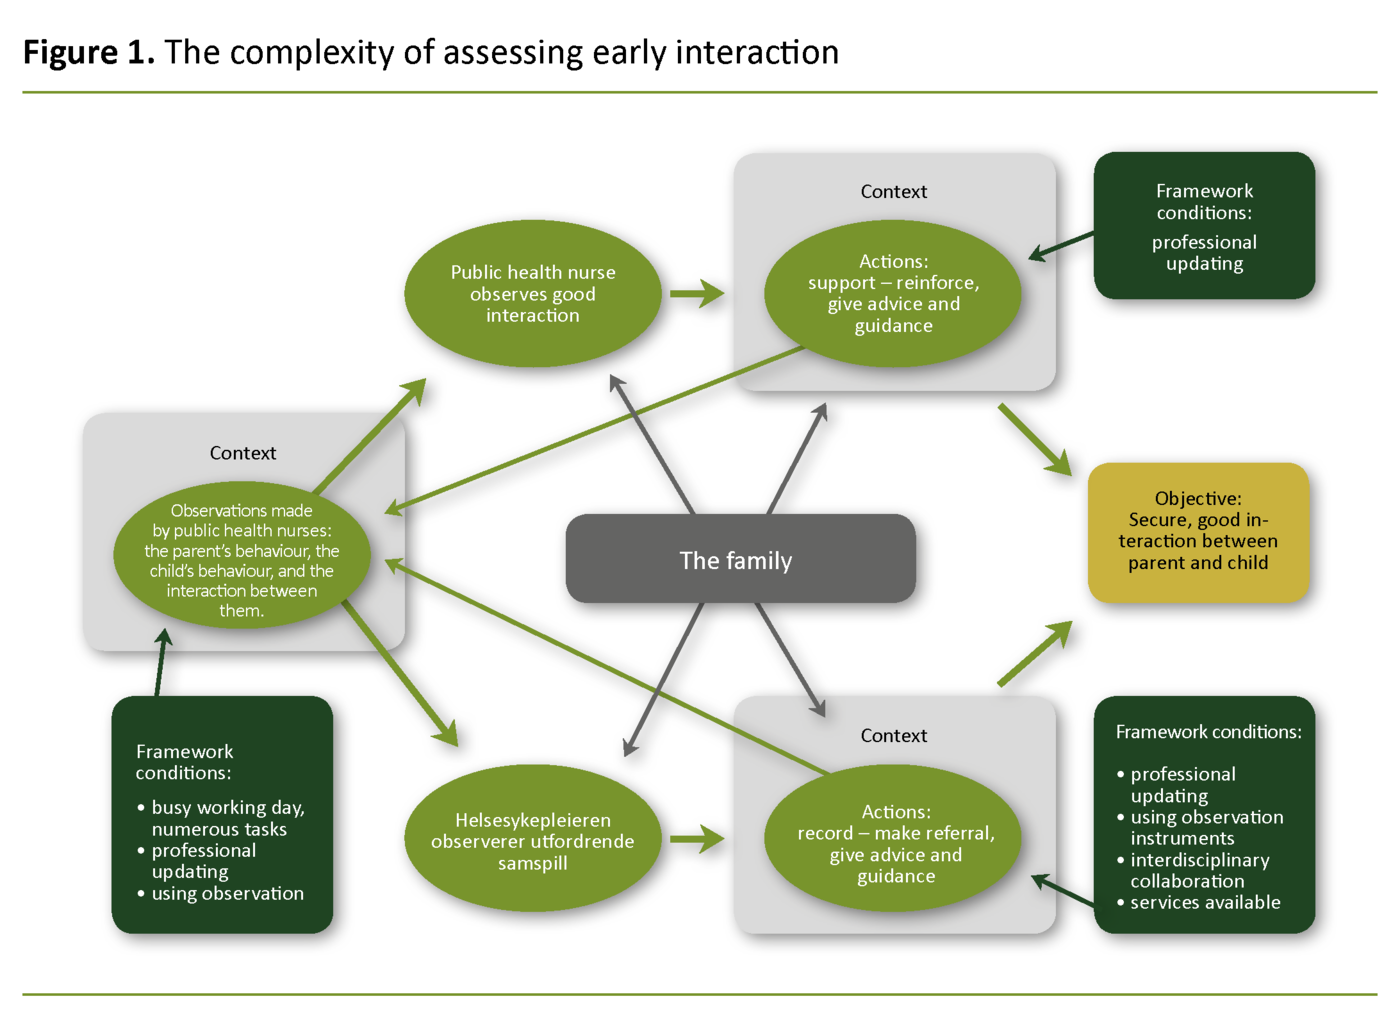 Figure 1. The complexity of assessing early interaction